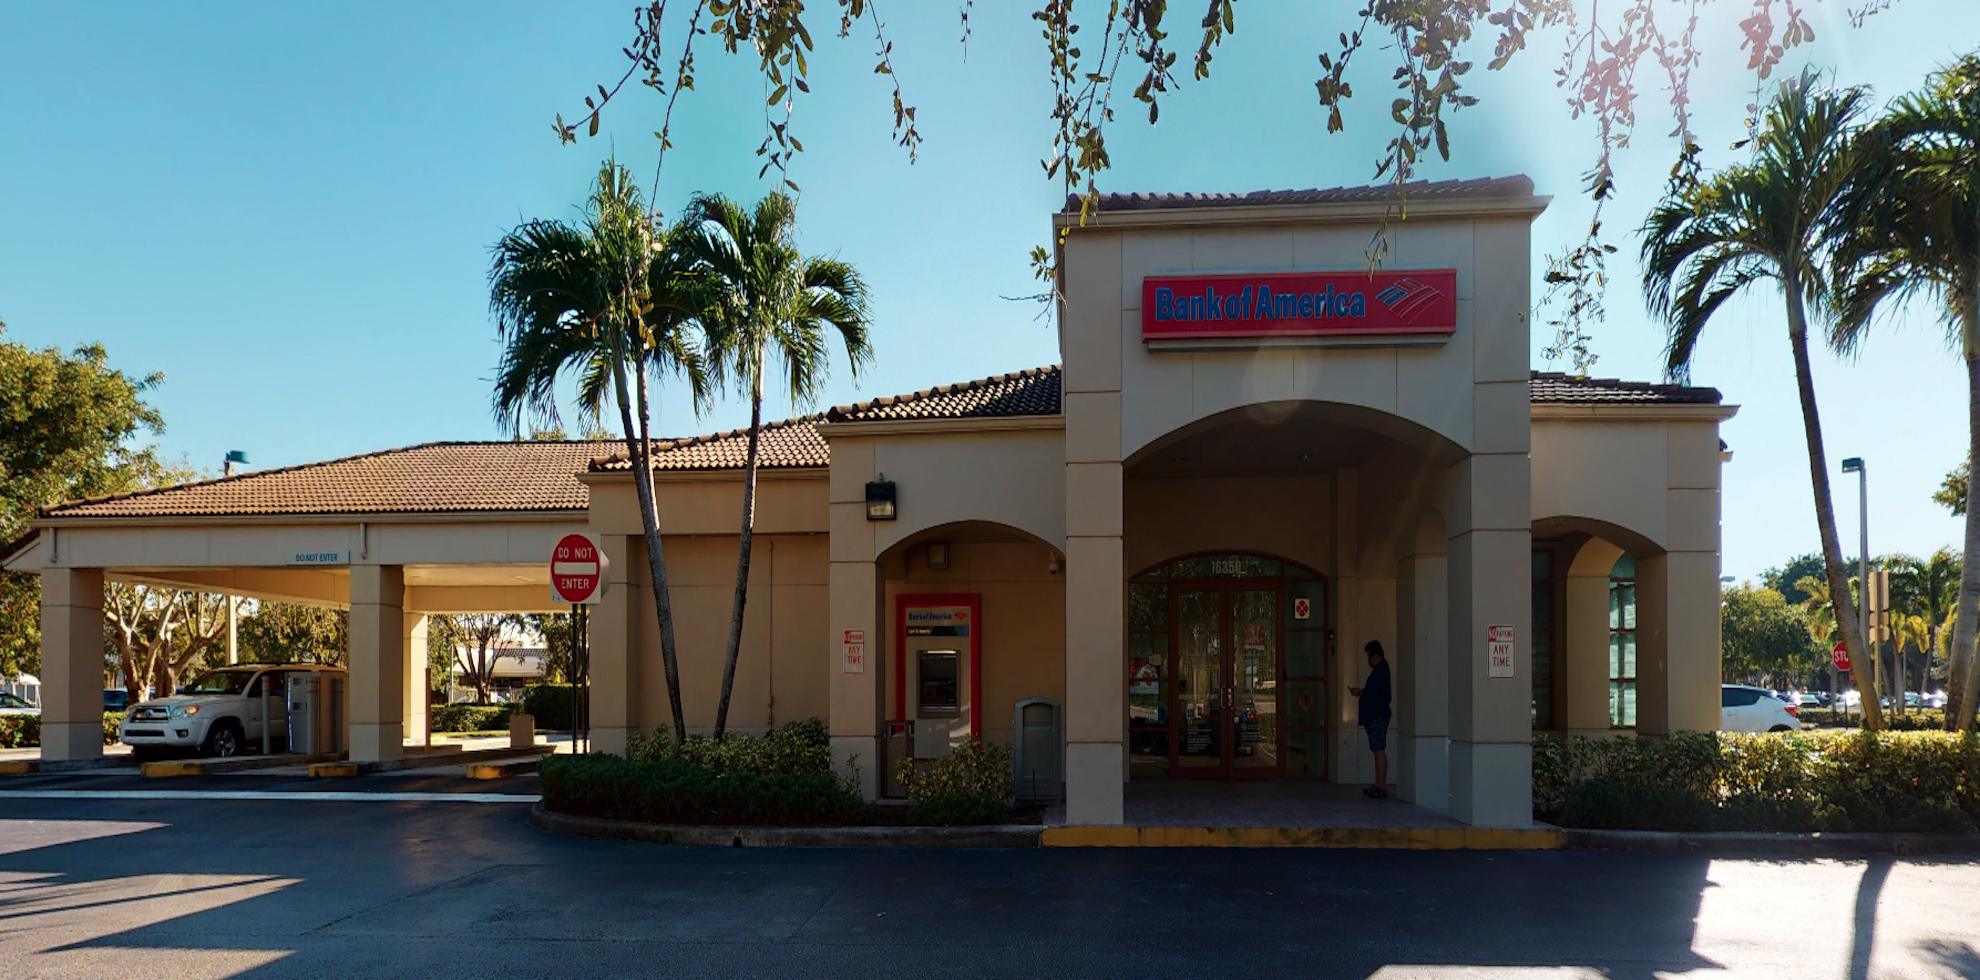 Bank of America financial center with drive-thru ATM and teller   16350 Pines Blvd, Pembroke Pines, FL 33027